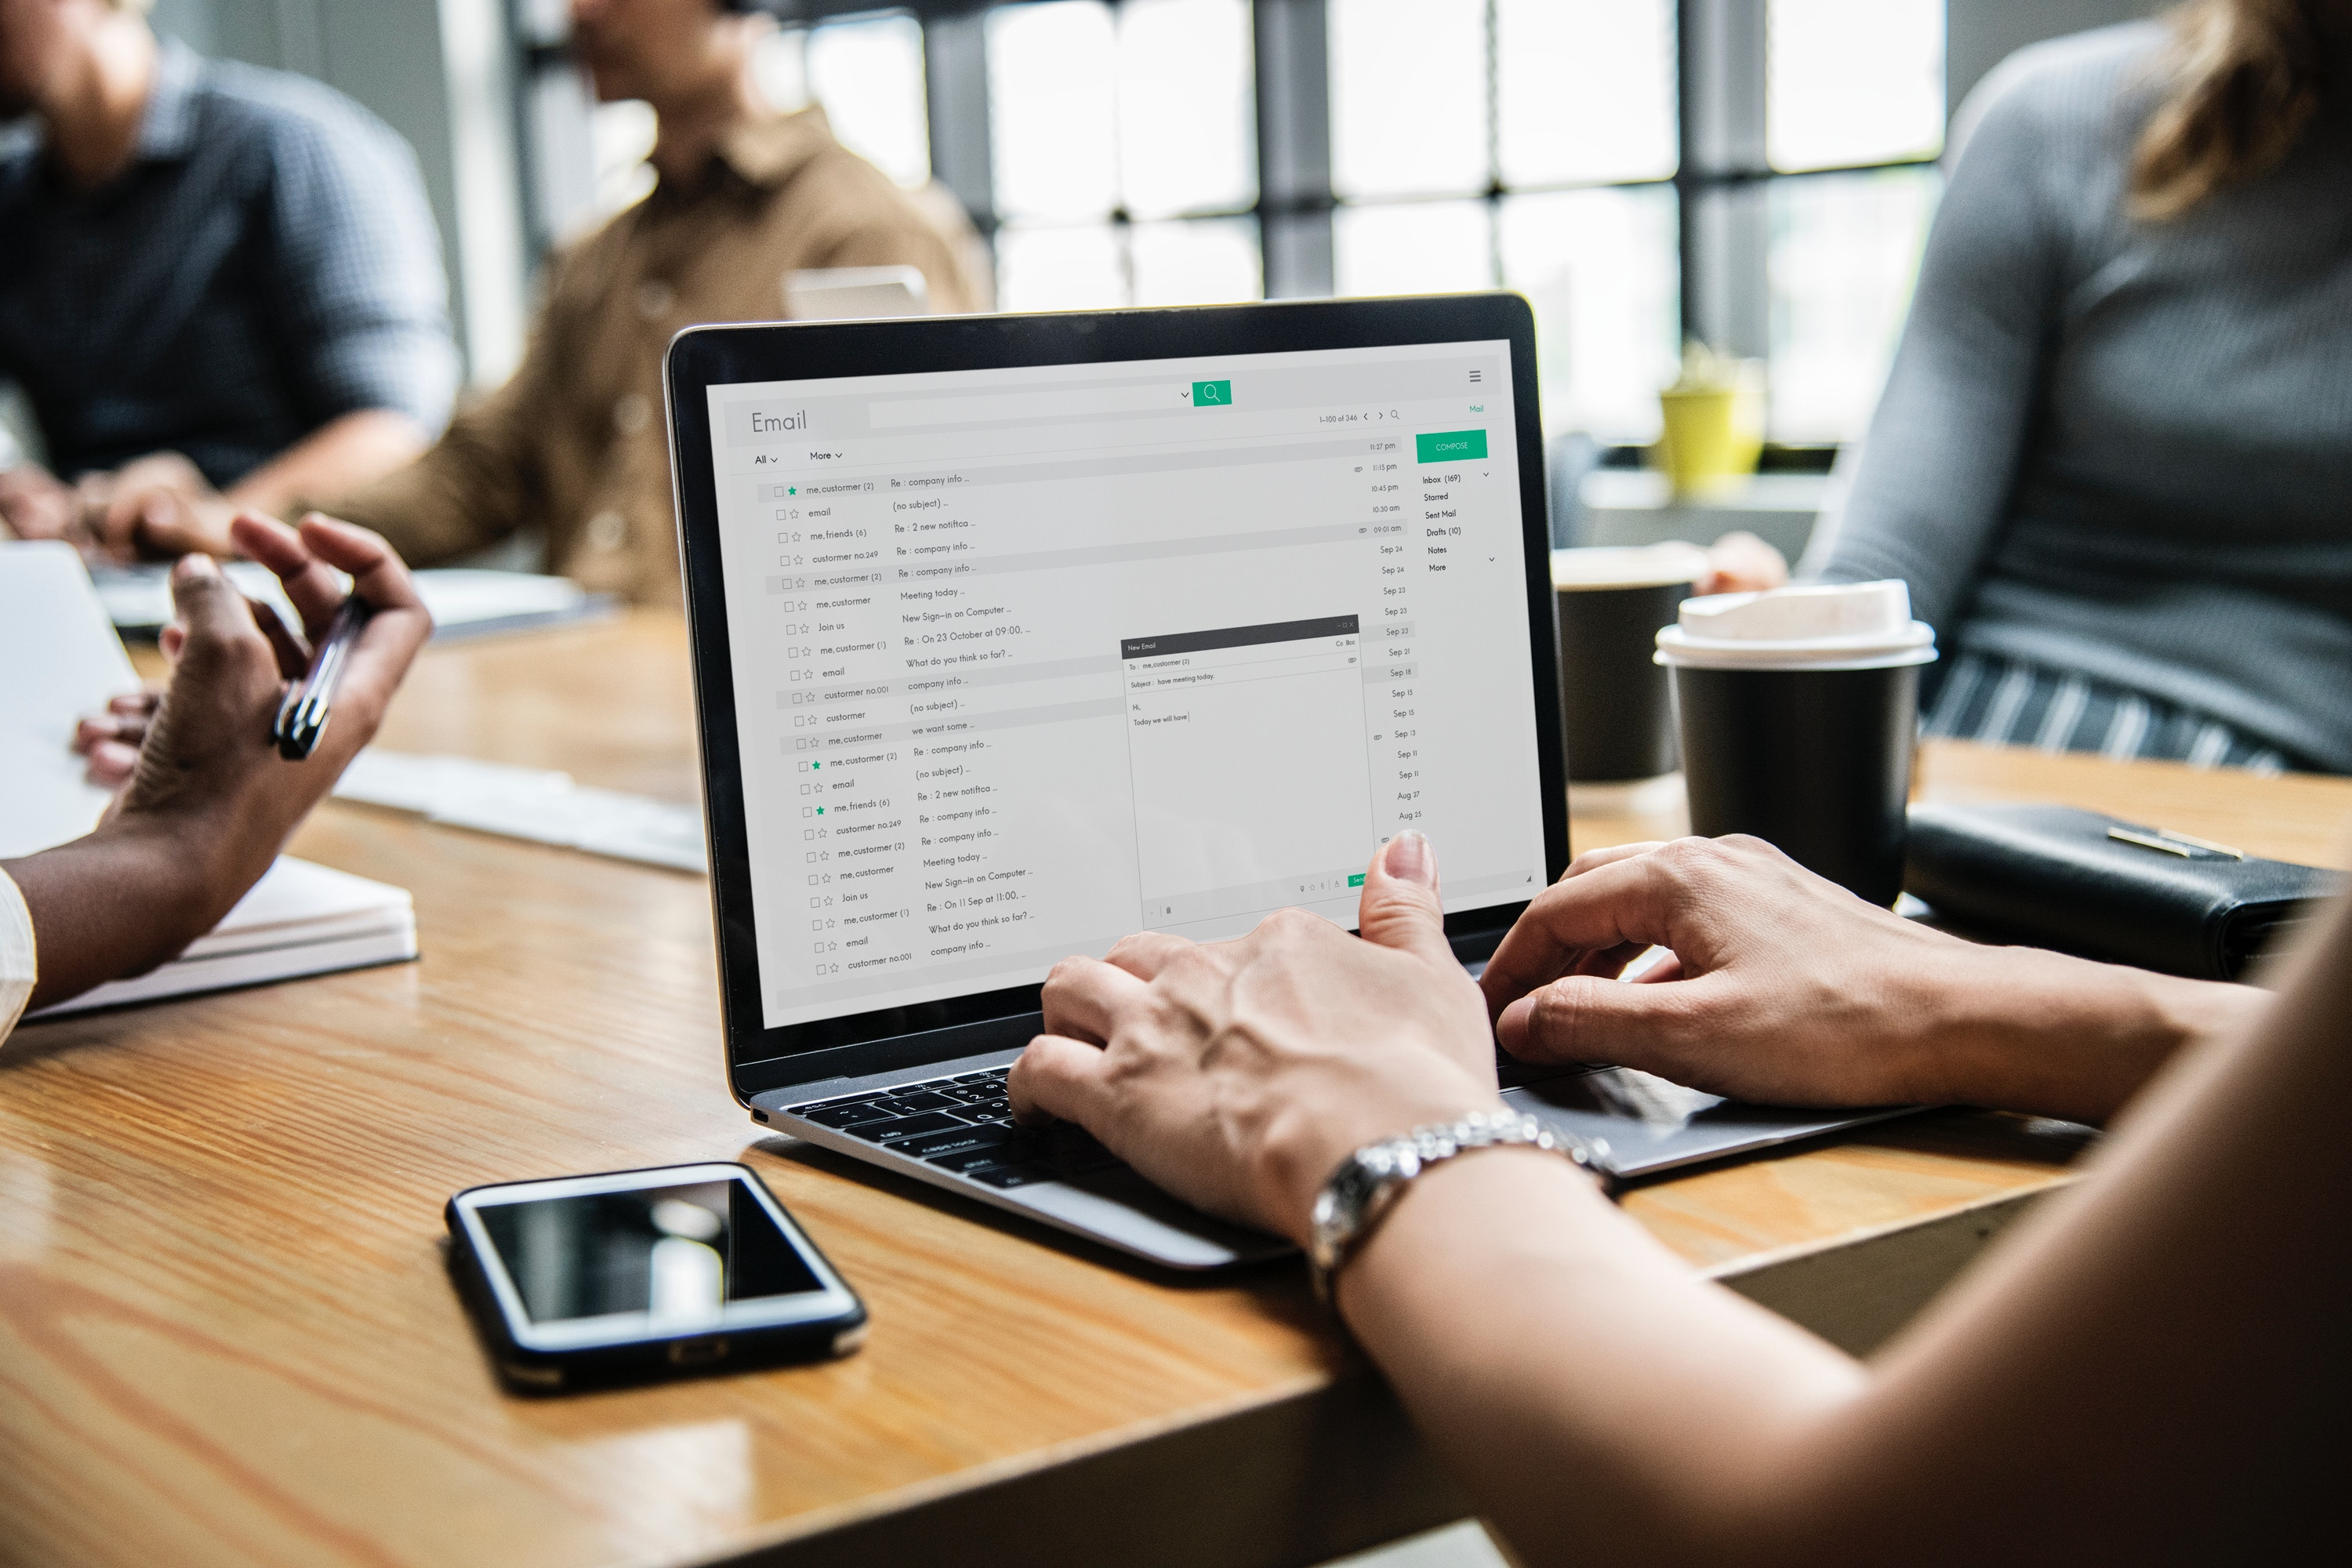 checking emails start with easy tasks